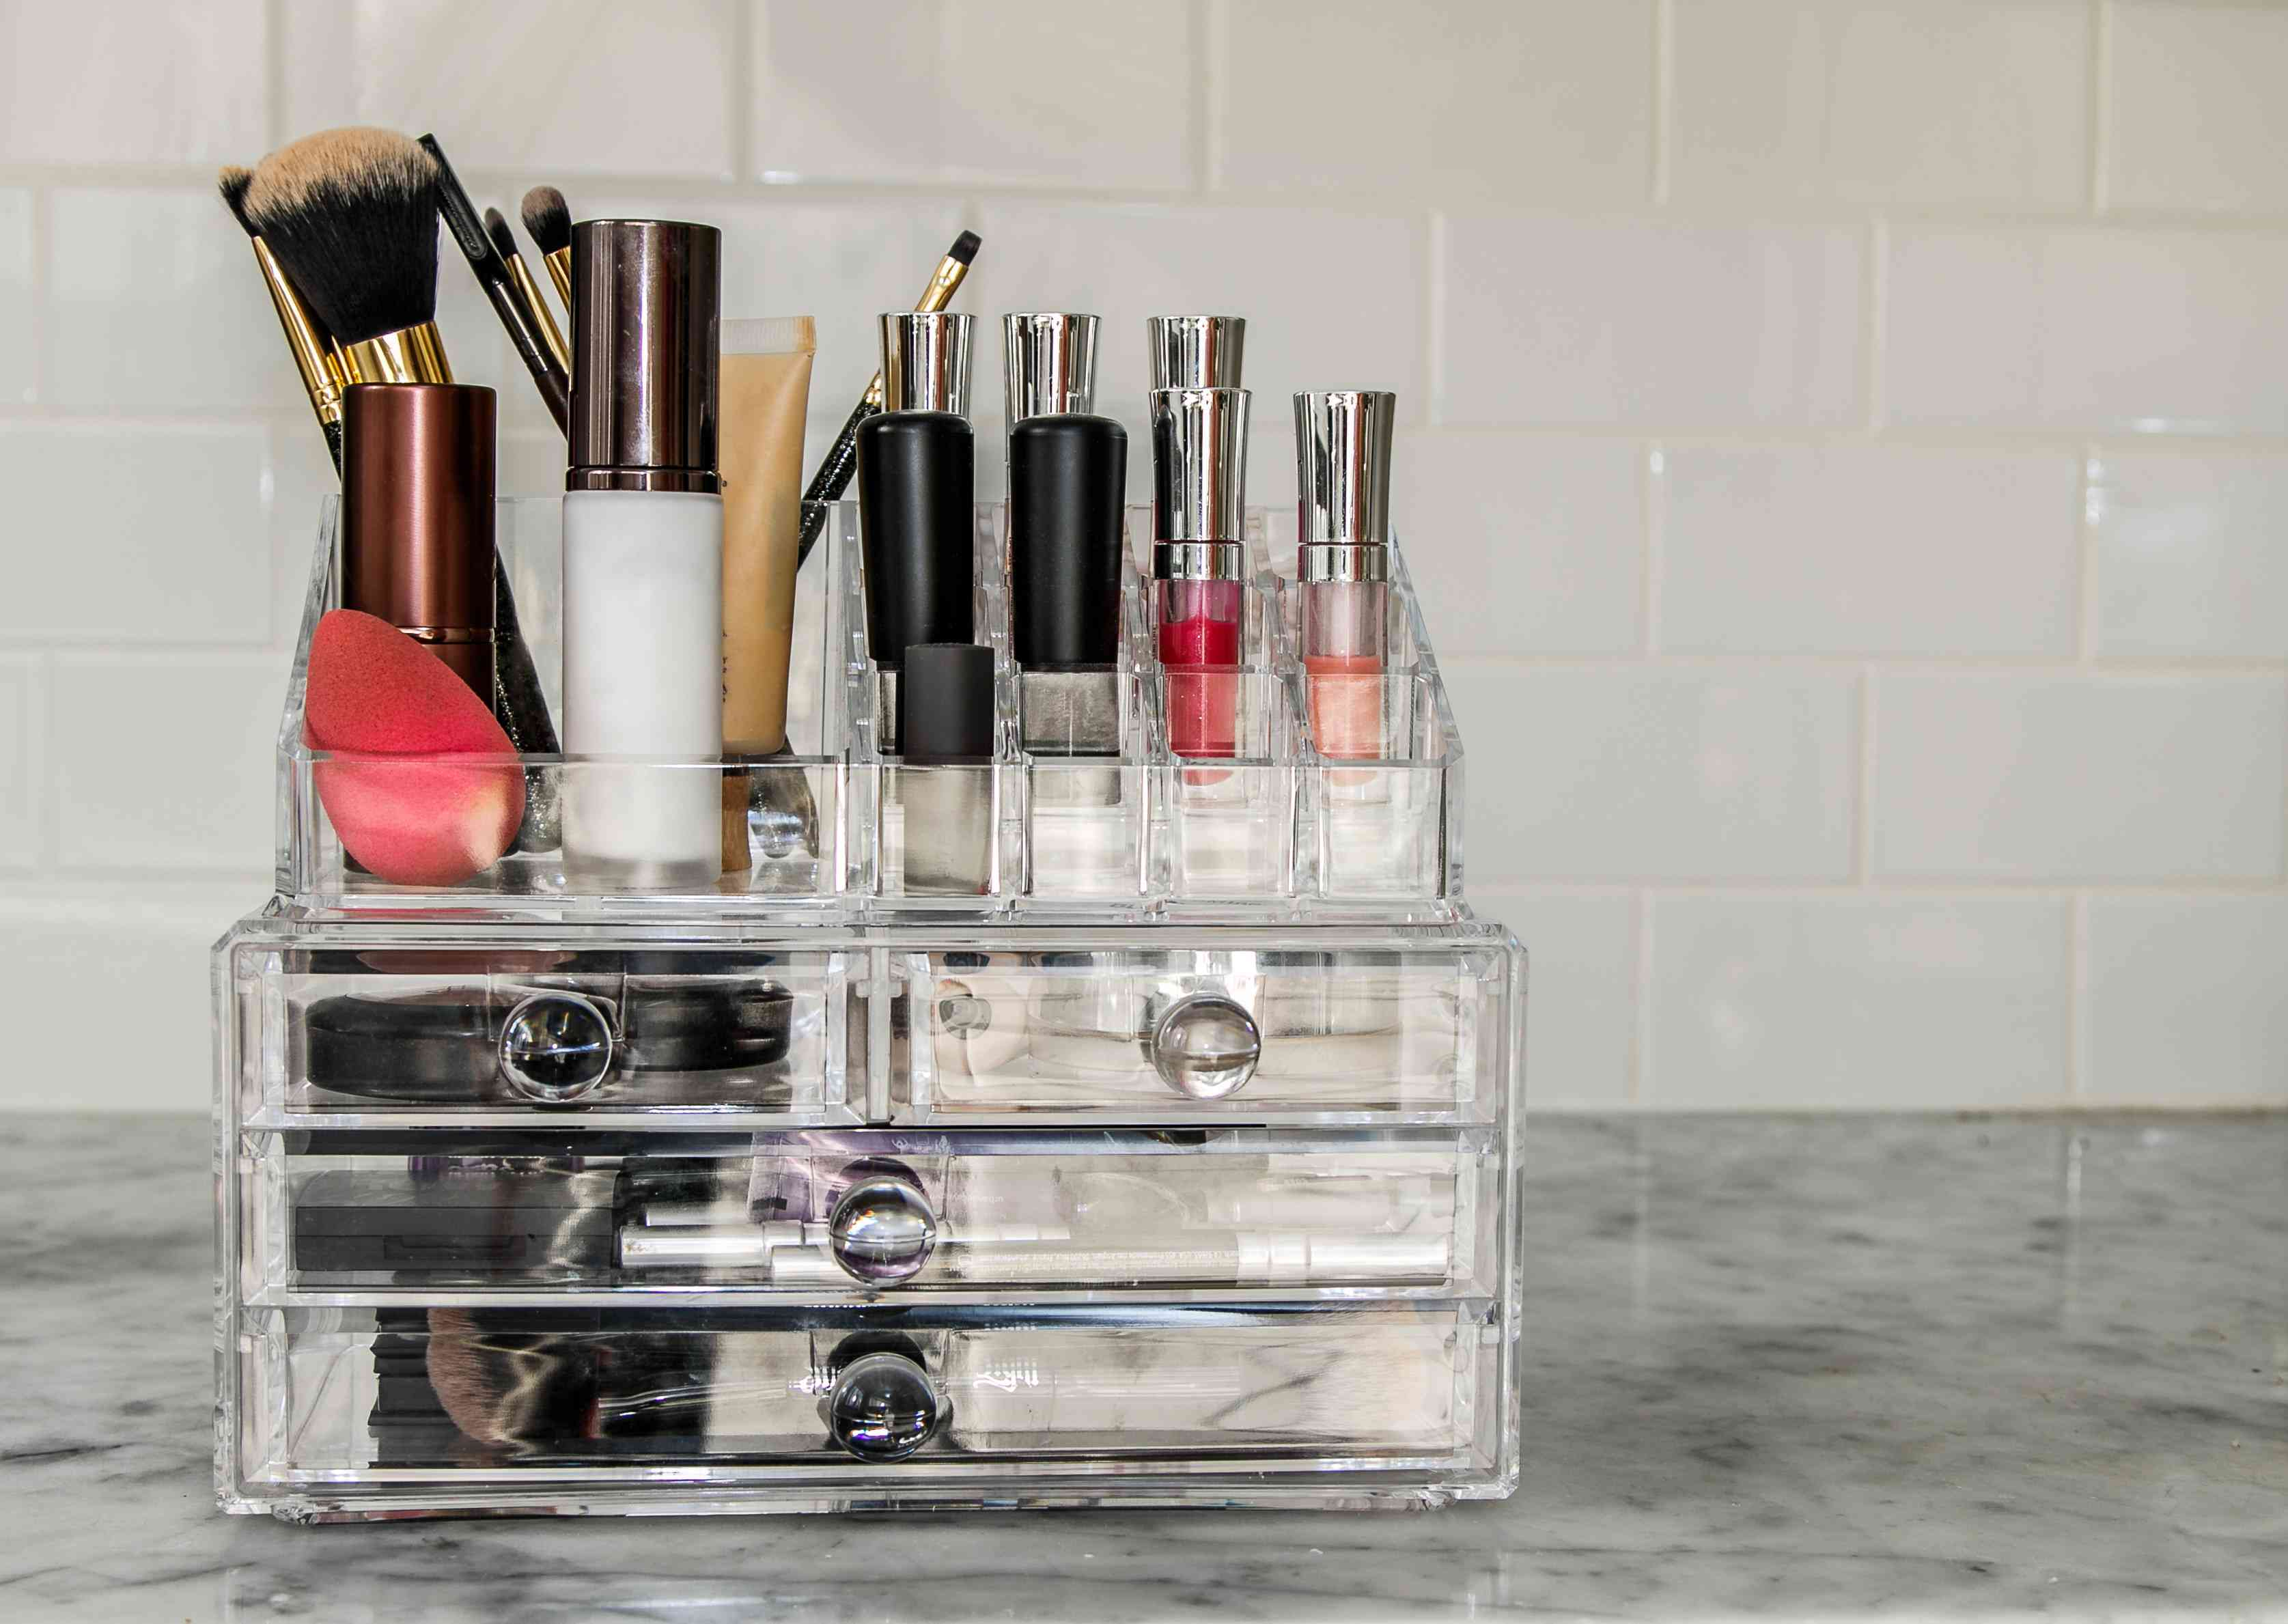 Beauty products, lipstick, brushes, gloss in a plastic organizer.